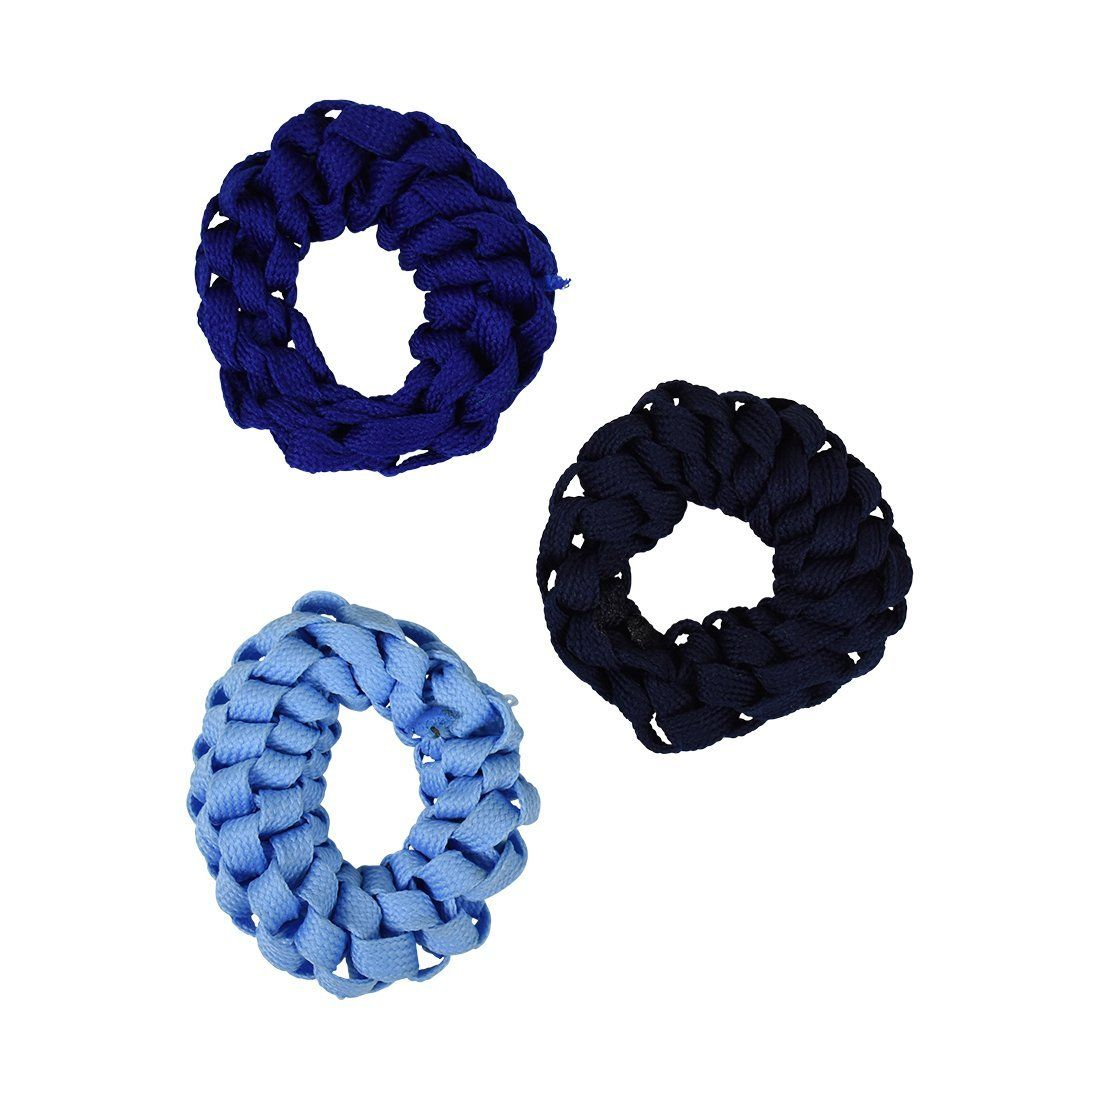 Set Of 3 Braided Hair Scrunchies Pony Holders For Women And Girls Blues This Is An Amazon Affiliate Link Check Out This Hair Elastic And Tie Braided Hairstyles Braids Hair Accessories